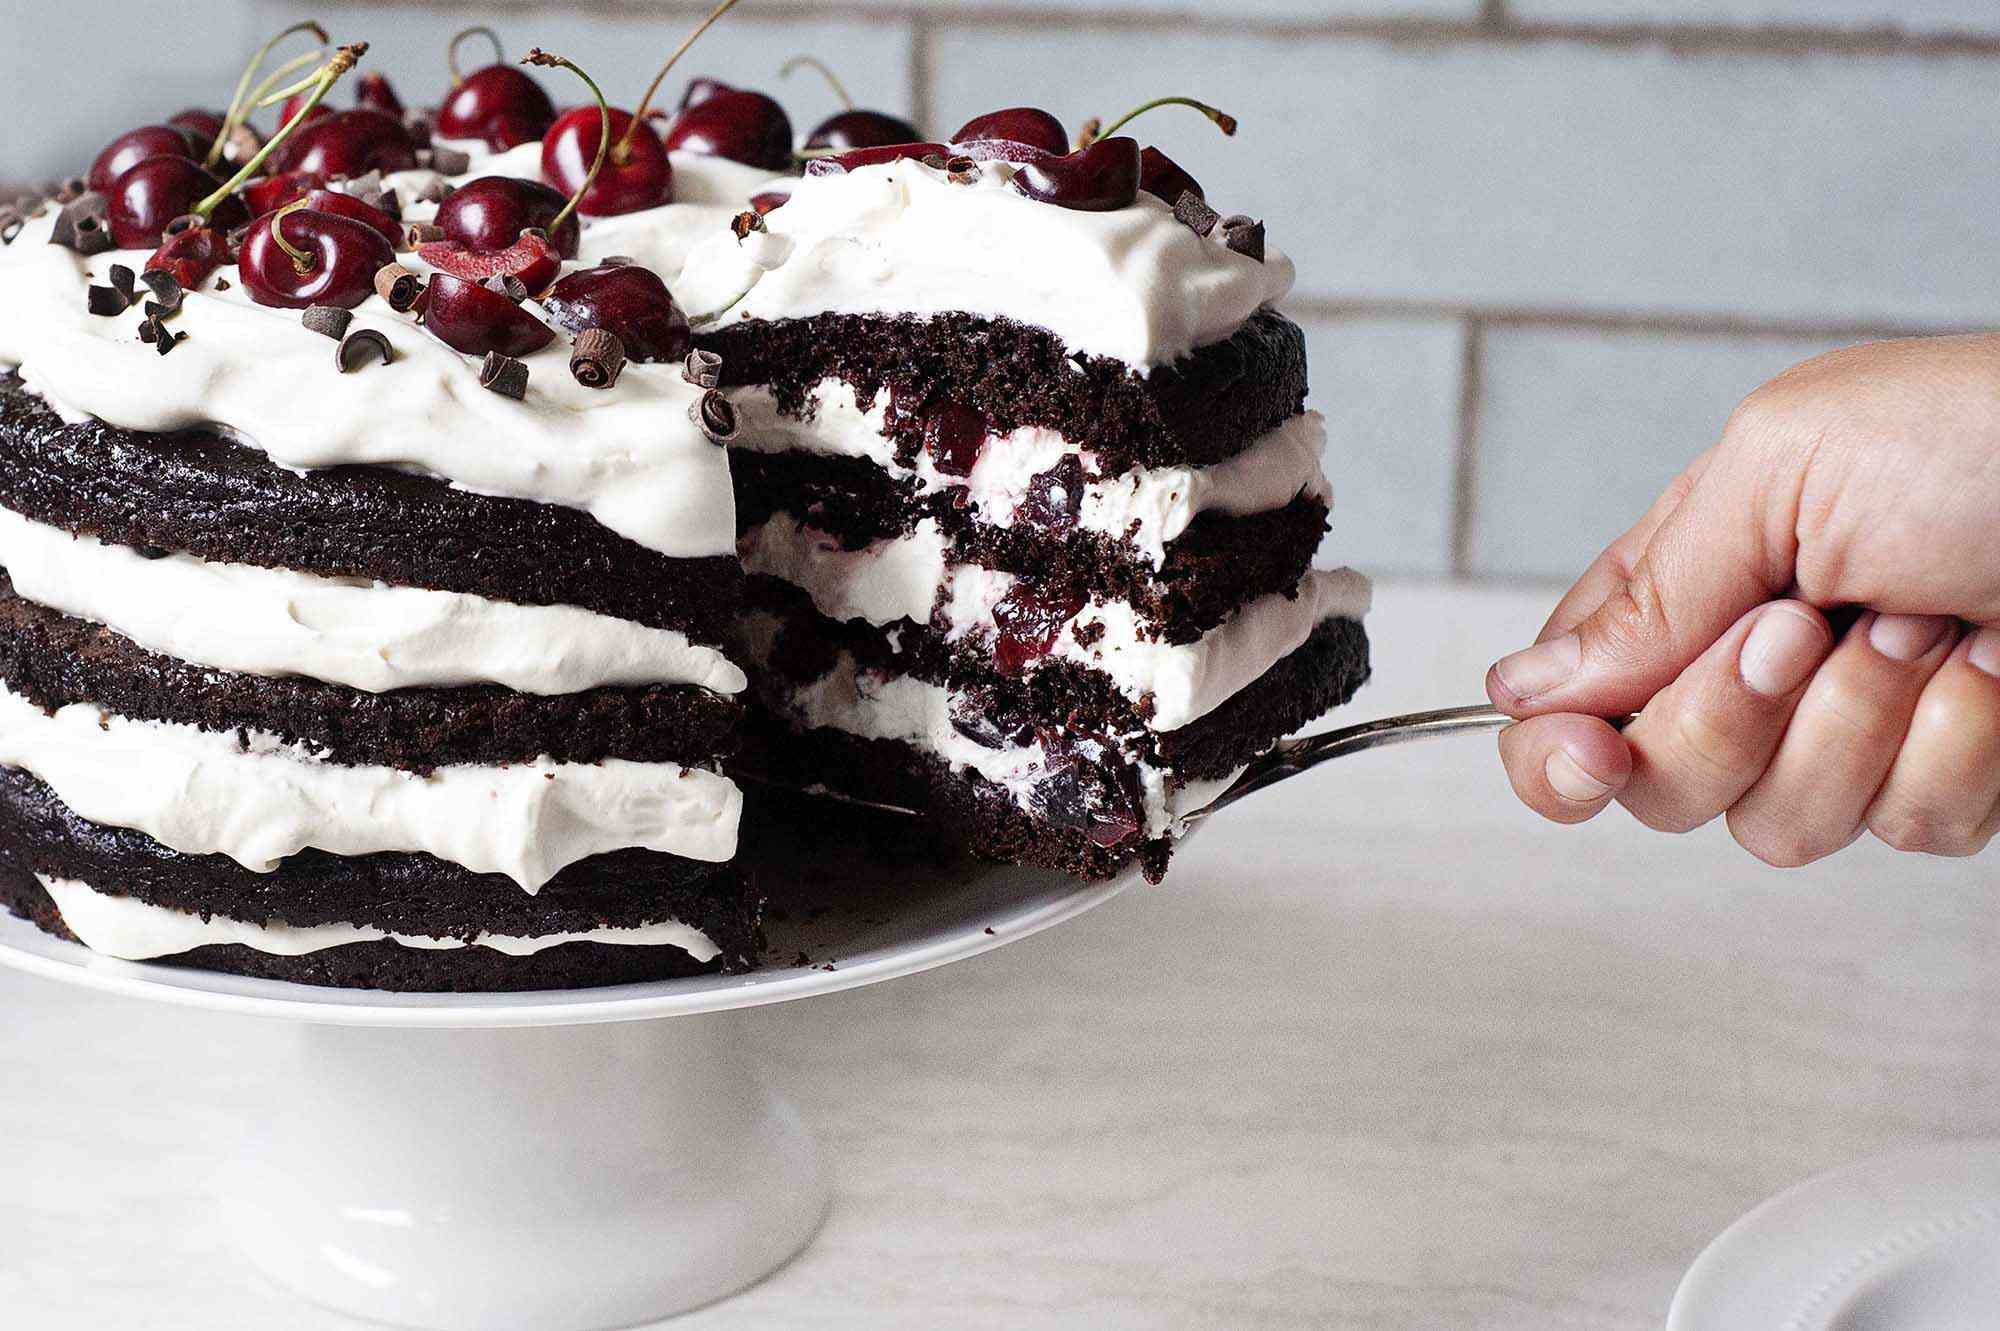 Homemade Black Forest Cake with a slice being removed.